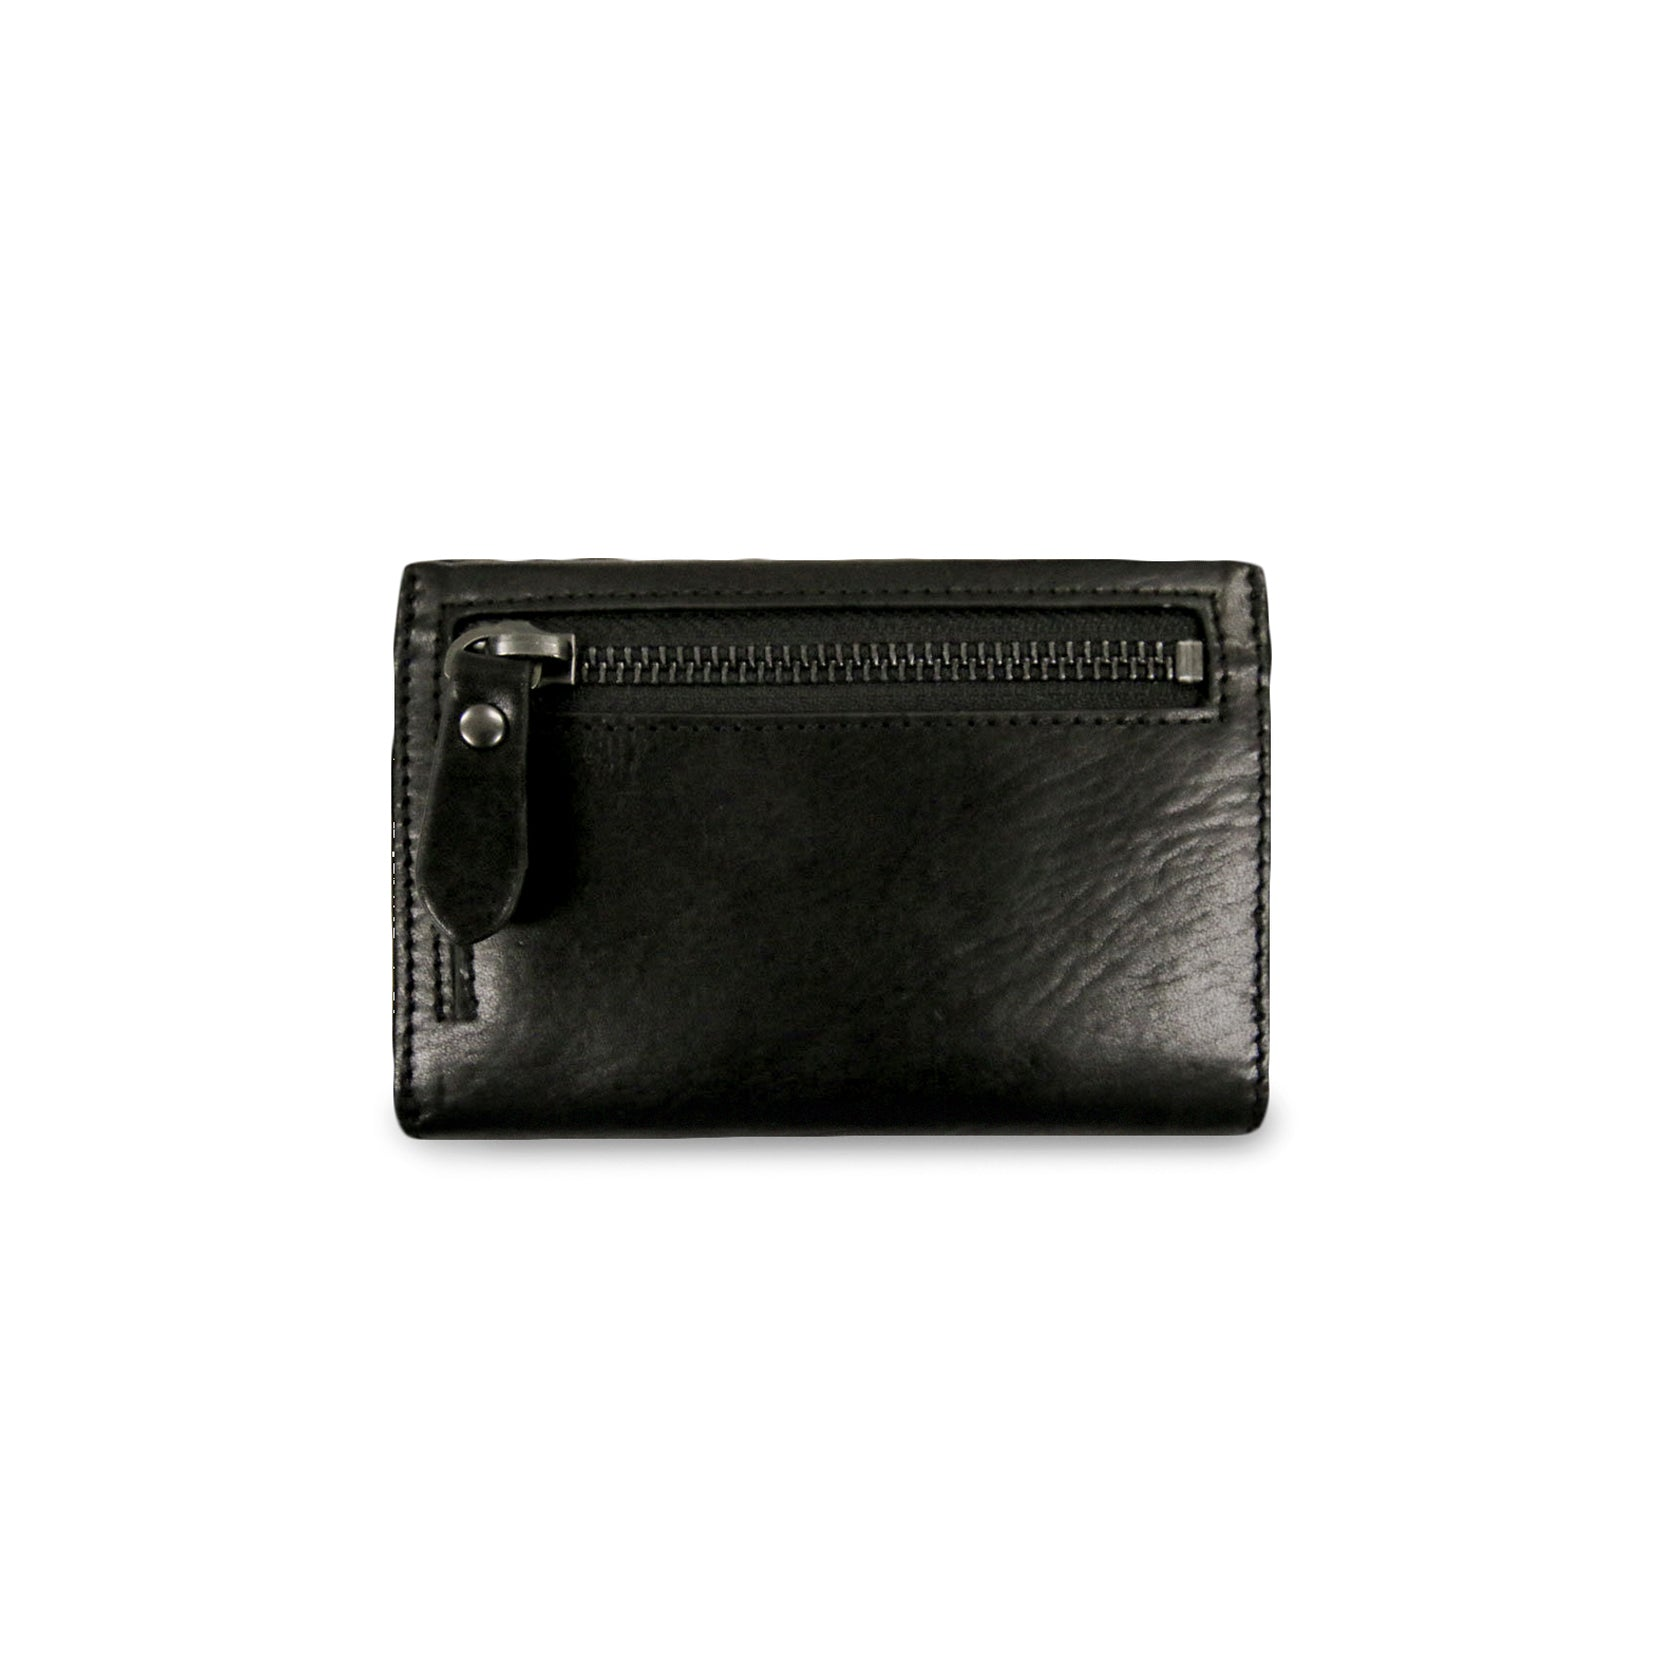 2-Tone Leather Wallet